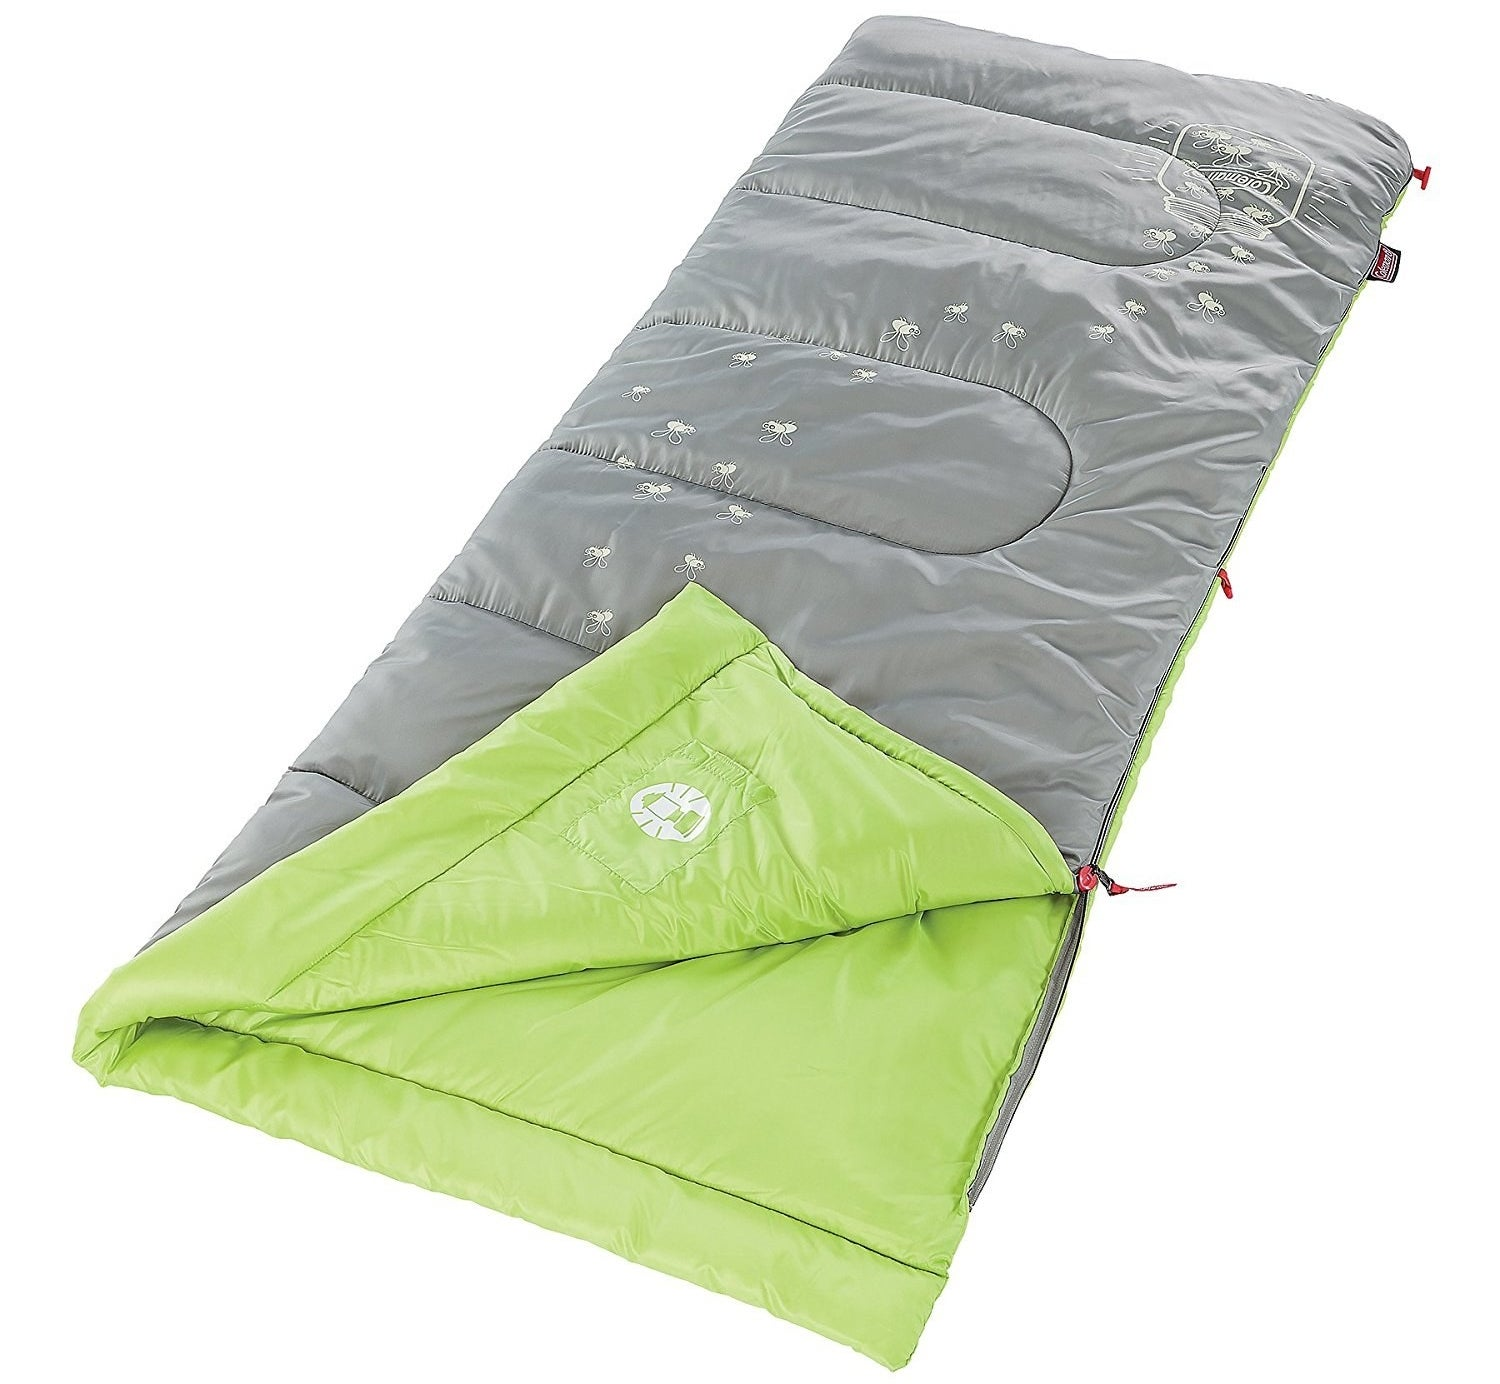 "This will keep kids warm even when it's 45°F outside. It weighs 2 lbs. and opens up to 72""x24"". It comes with an internal storage pouch and a stuff sack.Promising review: ""I bought this for my five-year-old son before our first camping trip. He LOVES it! I have to admit that I'm a little jealous that my sleeping bag isn't as adorable as this one! The lightning bugs glow in the dark long enough for him to go to sleep. He says it's very comfortable, too. It appears to be very good quality and kept him warm overnight in temps in the 40s. We loved it so much we purchased another for our eight-year-old son as well."" —LauraPrice: $26.16"